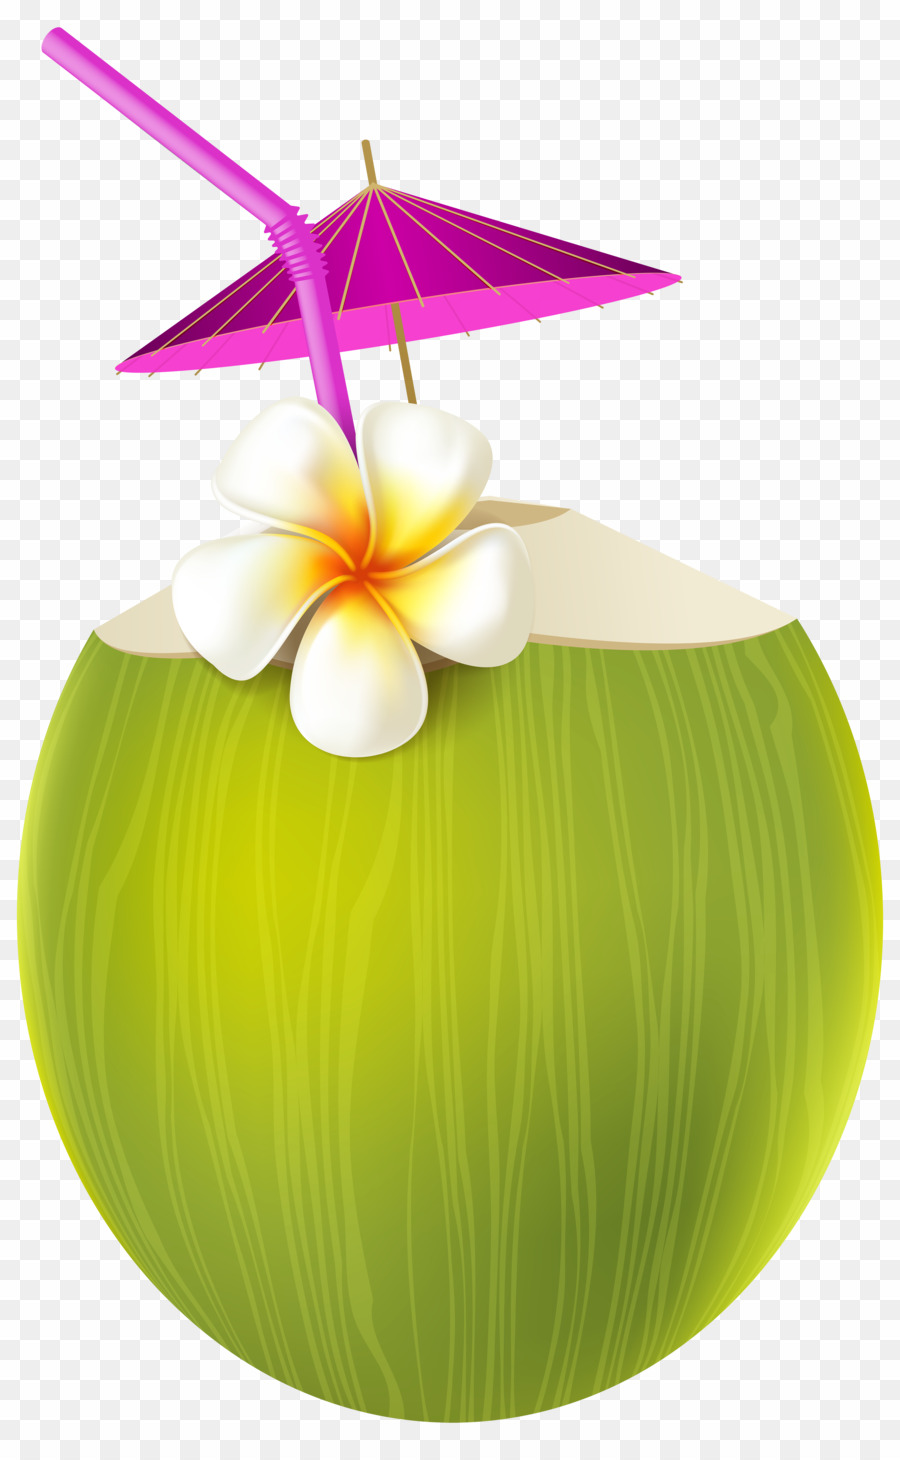 Water juice clipart svg Coconut Drink PNG Coconut Water Juice Clipart download ... svg